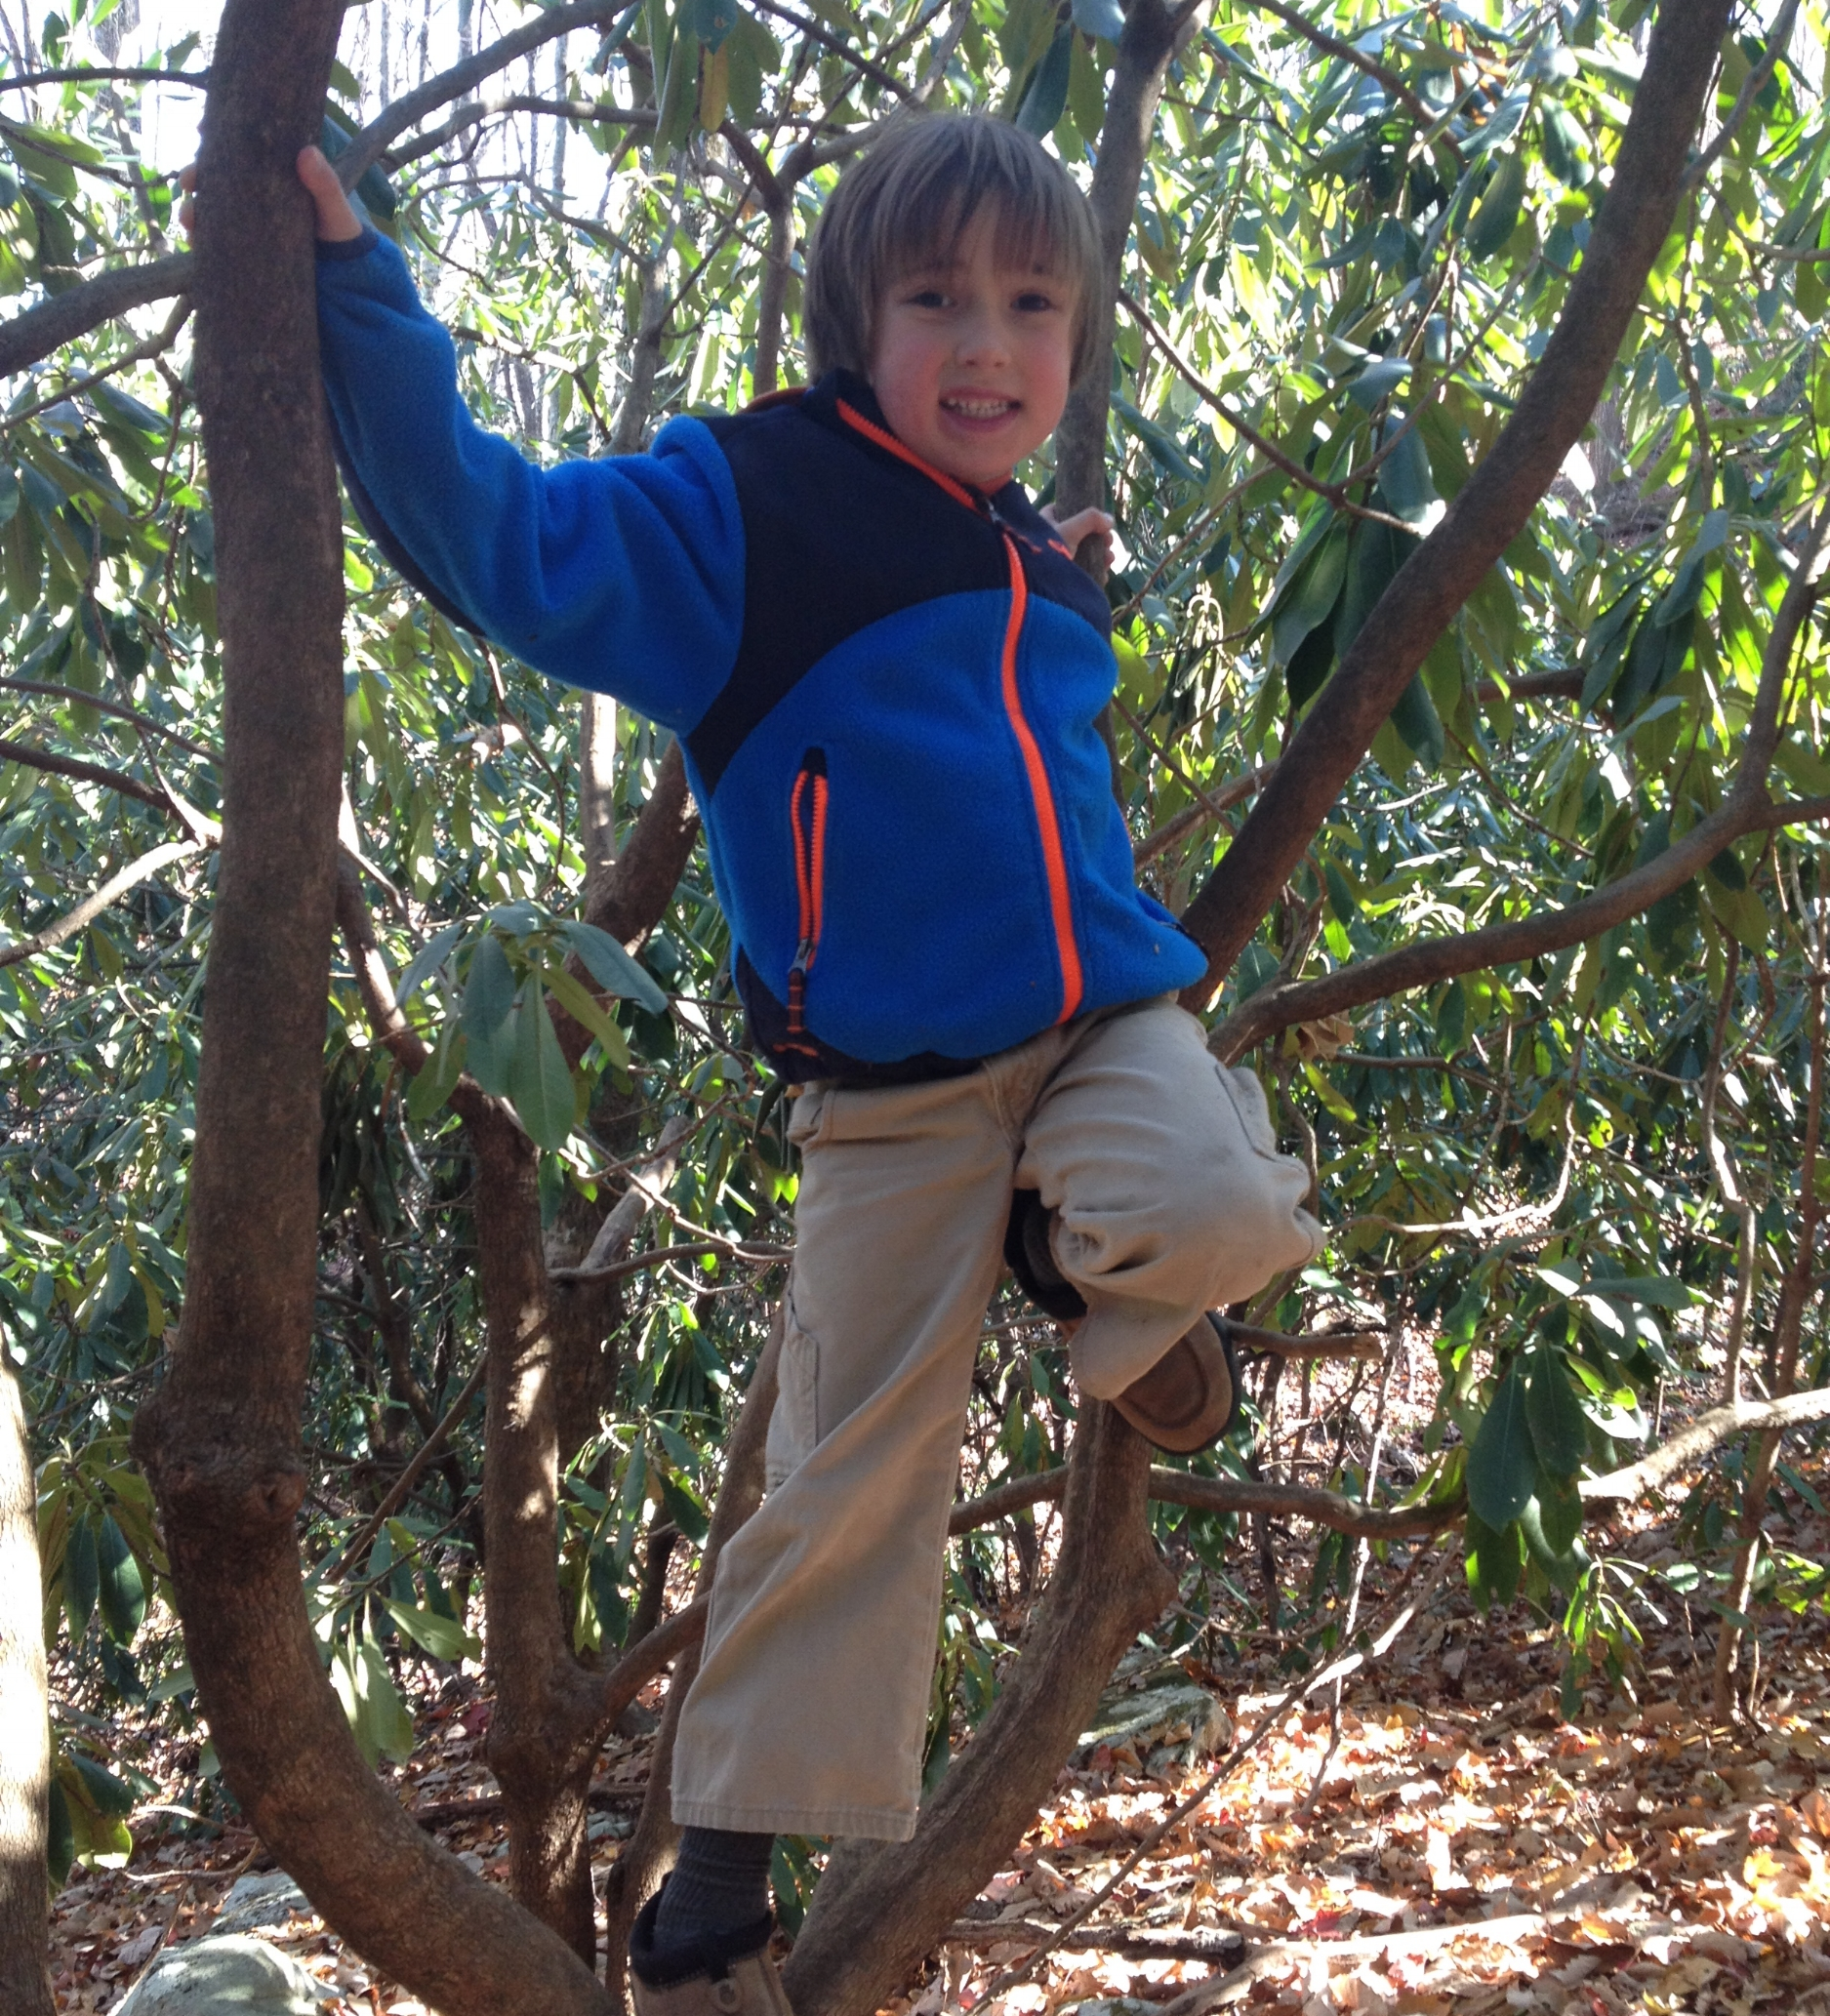 The rhododendron forests surrounding the classroom provide ample opportunity for climbing.